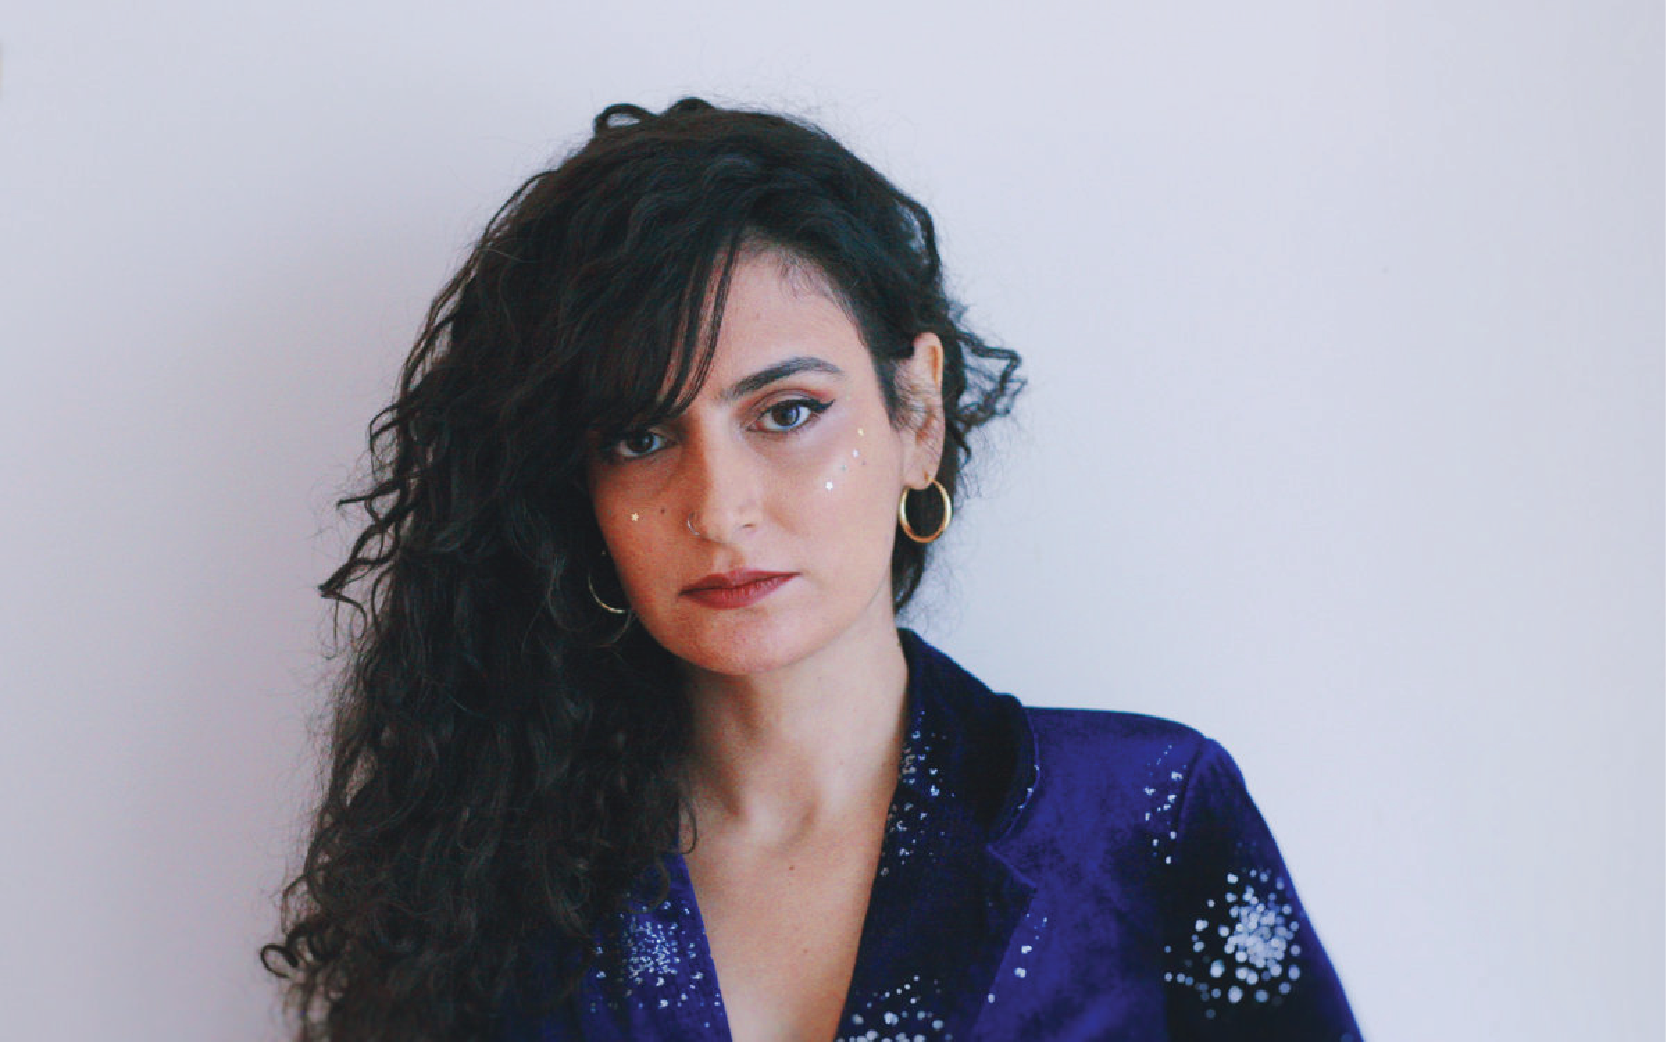 London-Based Palestinian Artist Ruba Shamshoum Gives Glimpse of Upcoming LP with New Single 'Sununu'